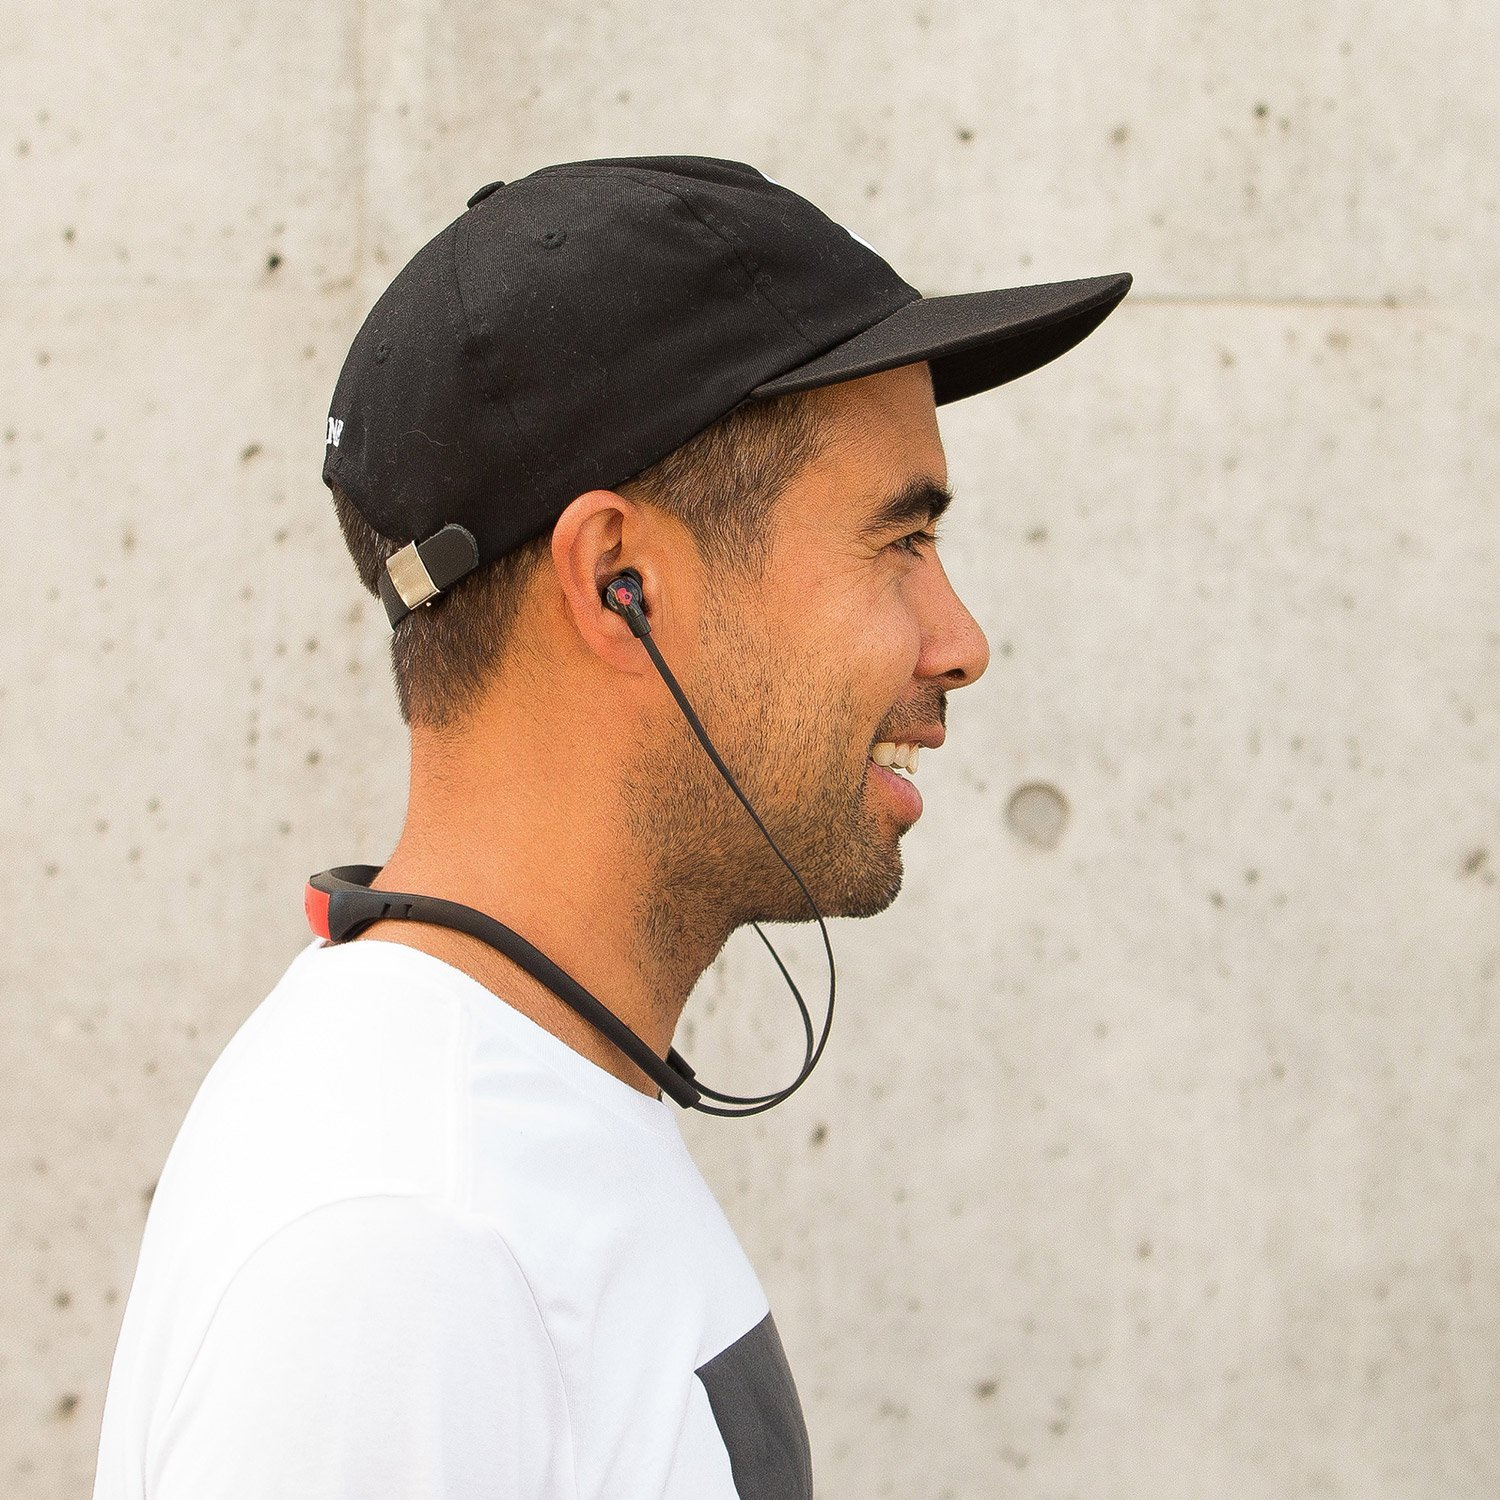 Skullcandy-Smokin-039-Buds-2-in-Ear-Bluetooth-Wireless-Earbuds-with-Microphone-New thumbnail 14